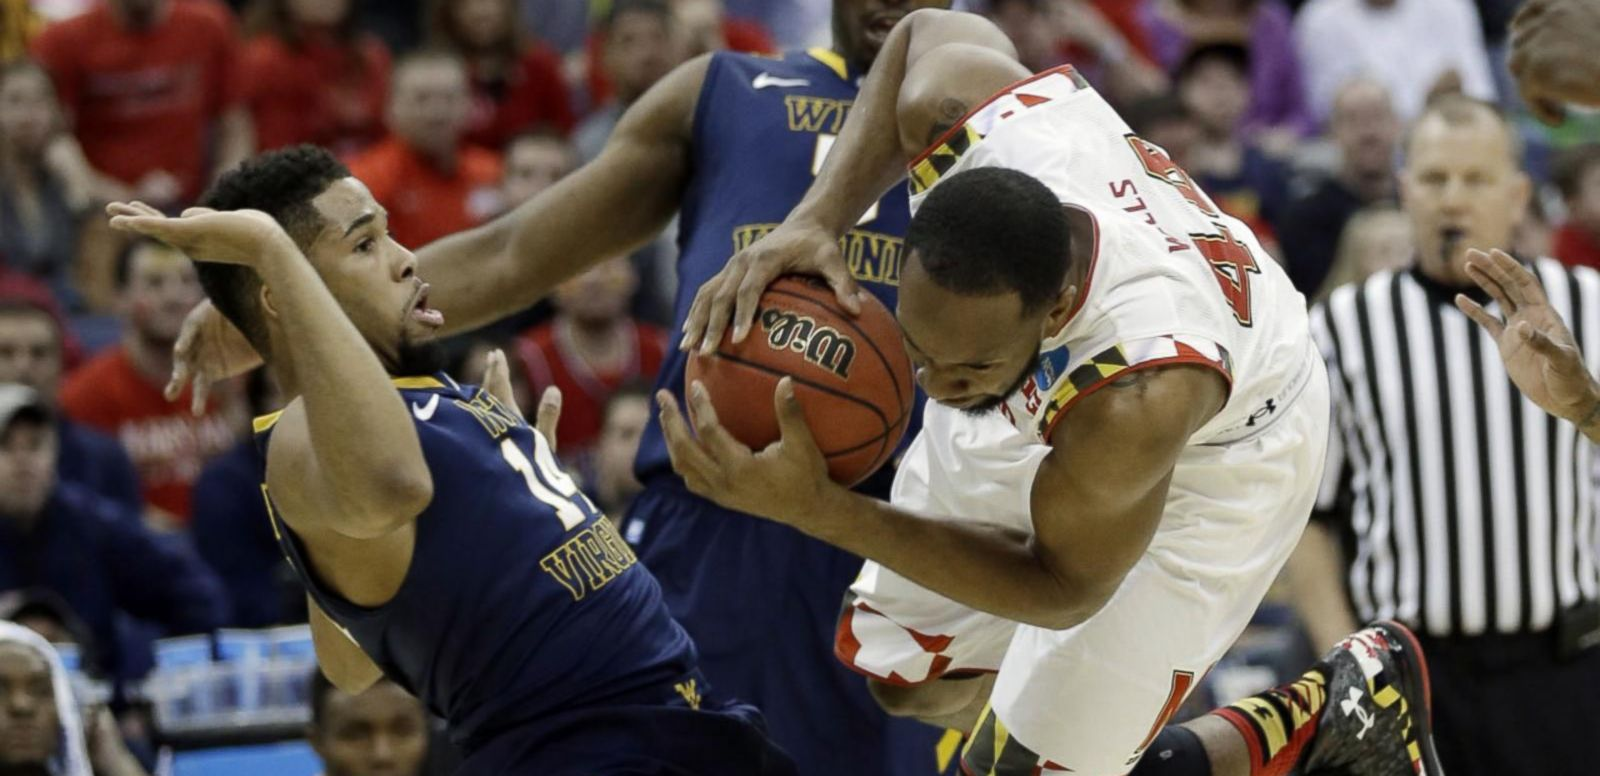 VIDEO: March Madness: How Sweet It Is